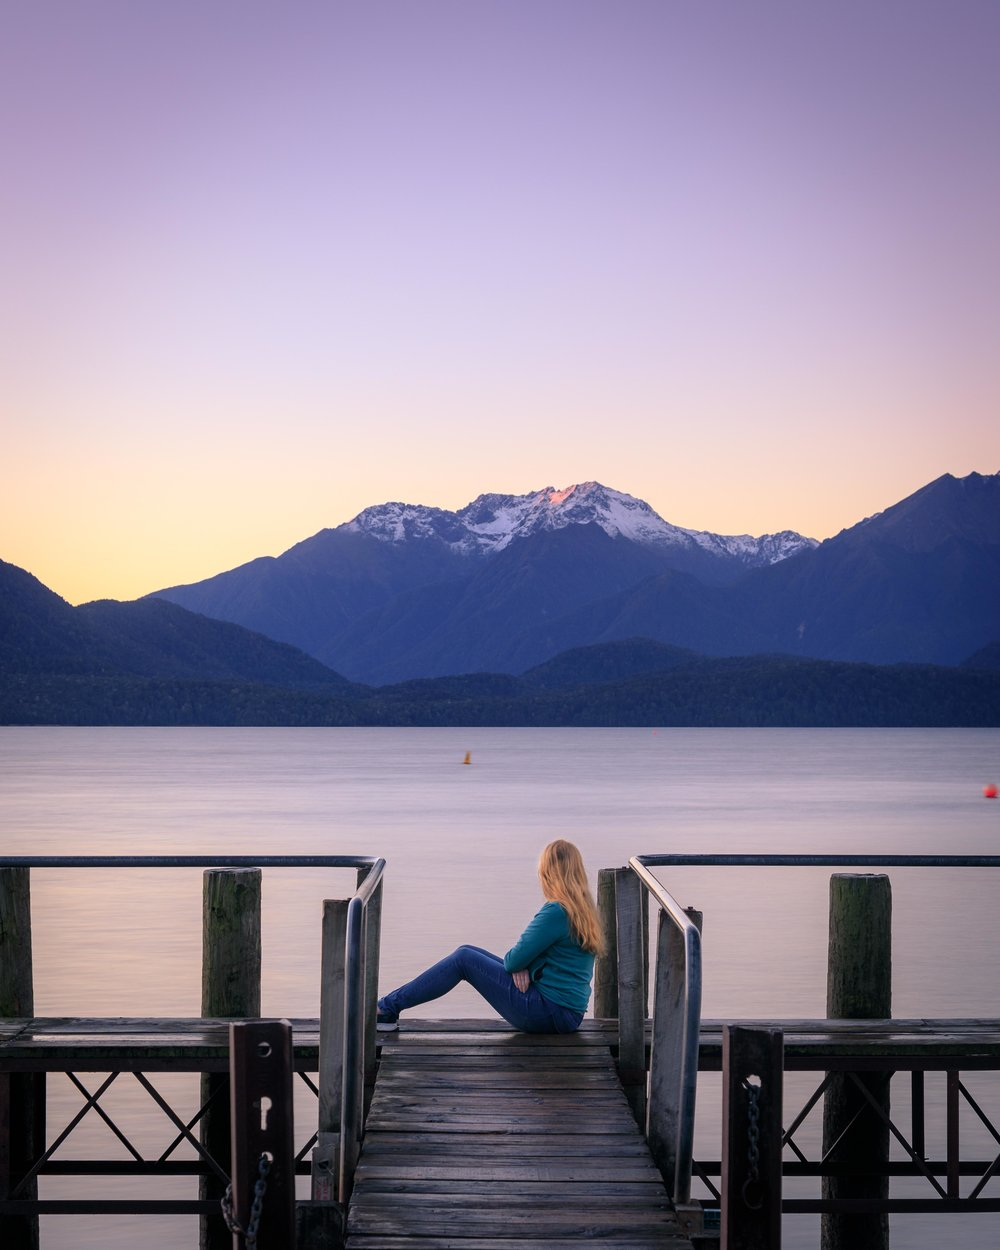 Instagrammable spots of New Zealand: Te Anau Jetty